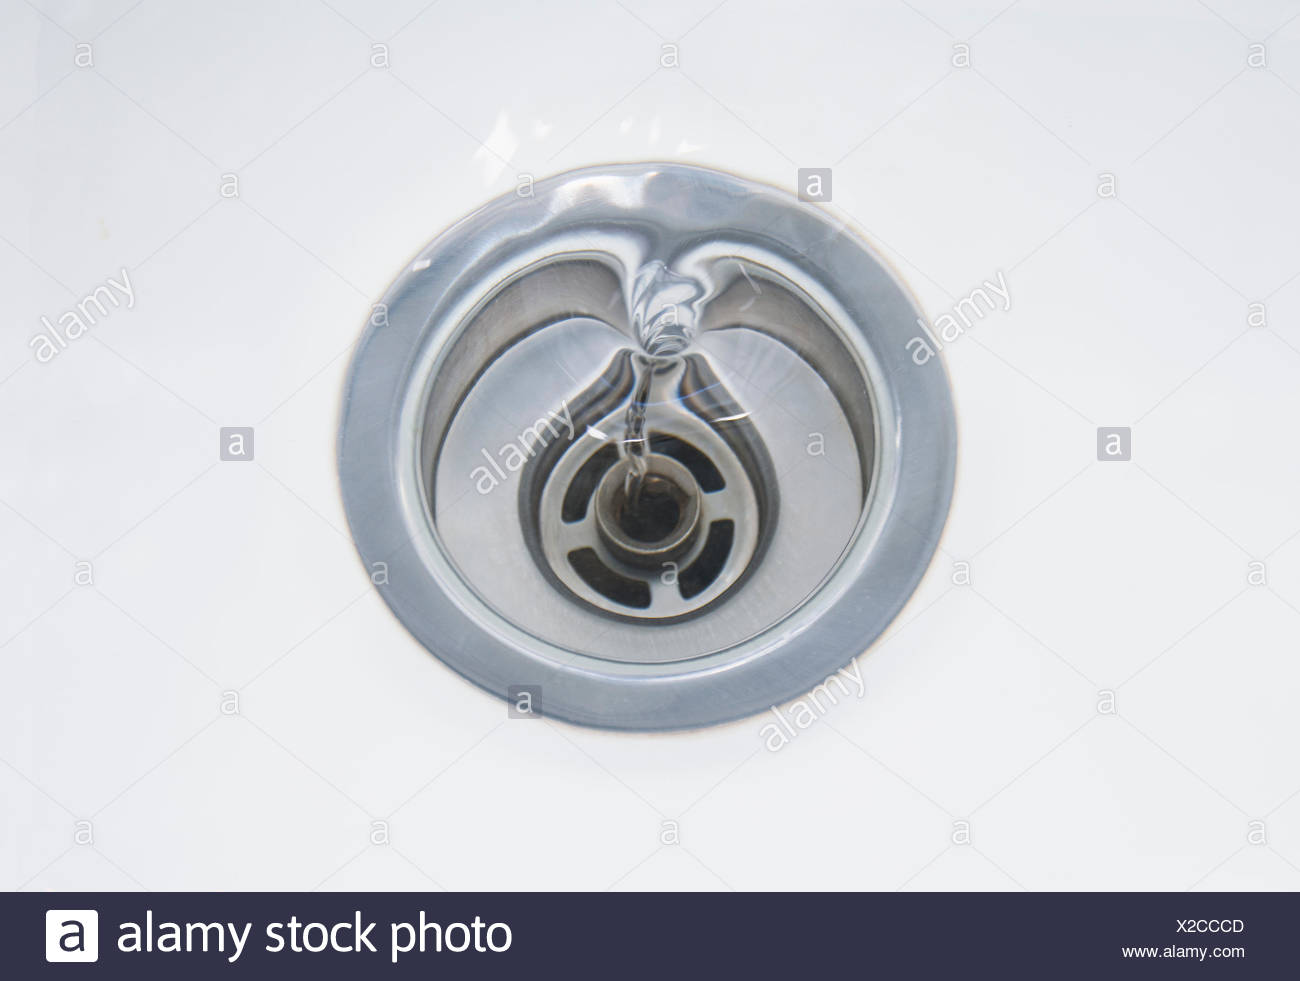 Close up of sink with draining water - Stock Image